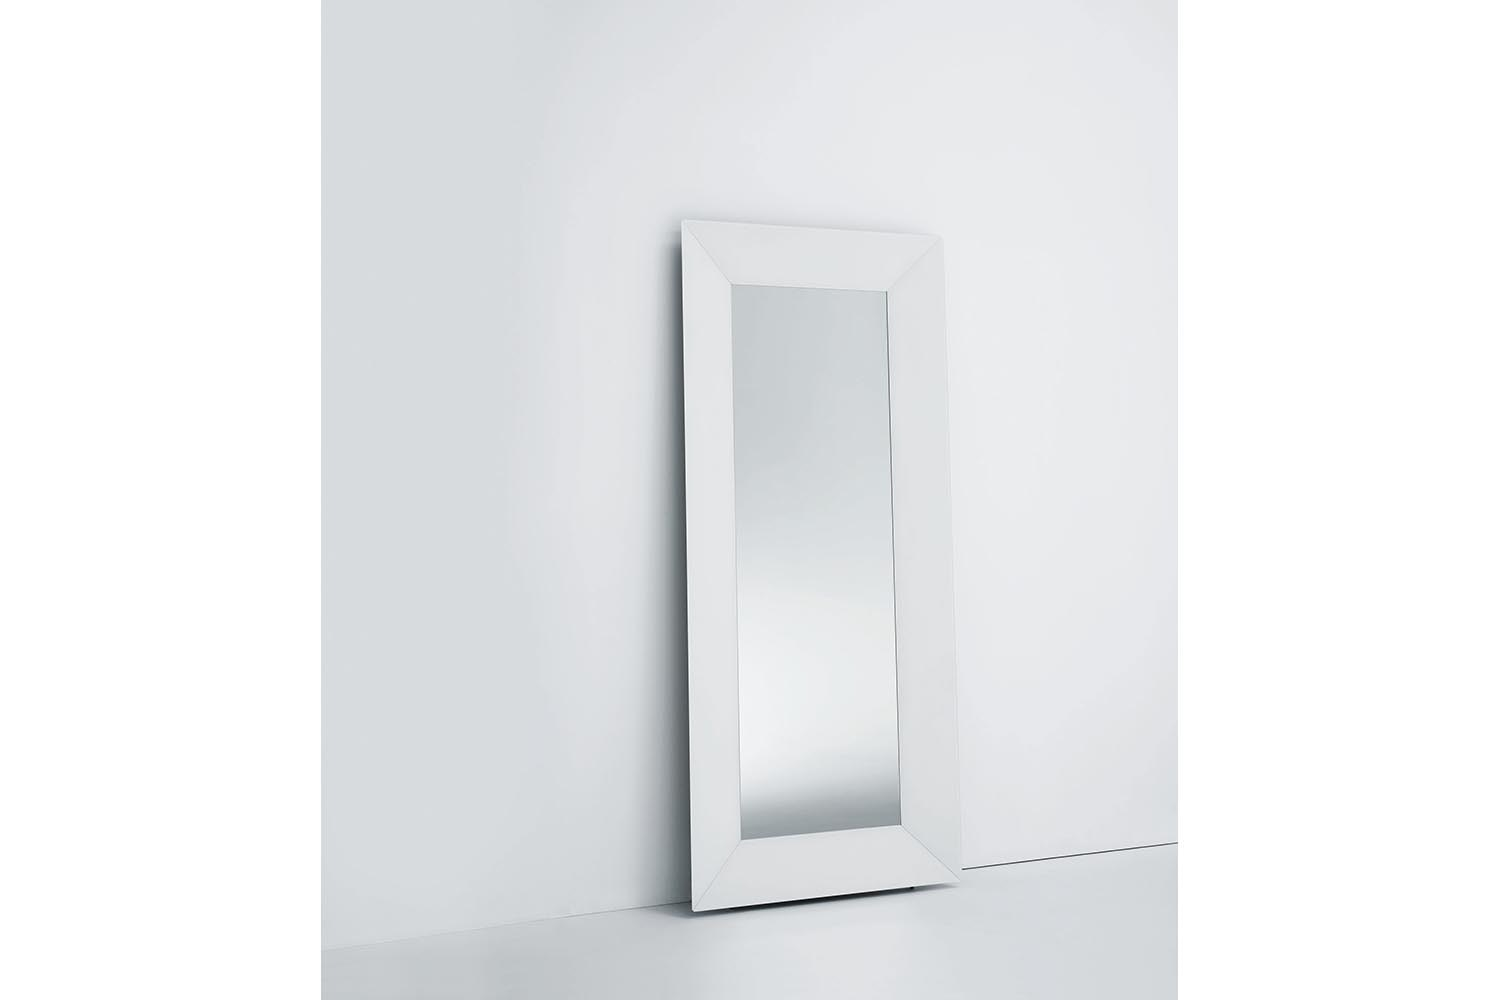 Aura Big Mirror by Riccardo Dalisi for Glas Italia